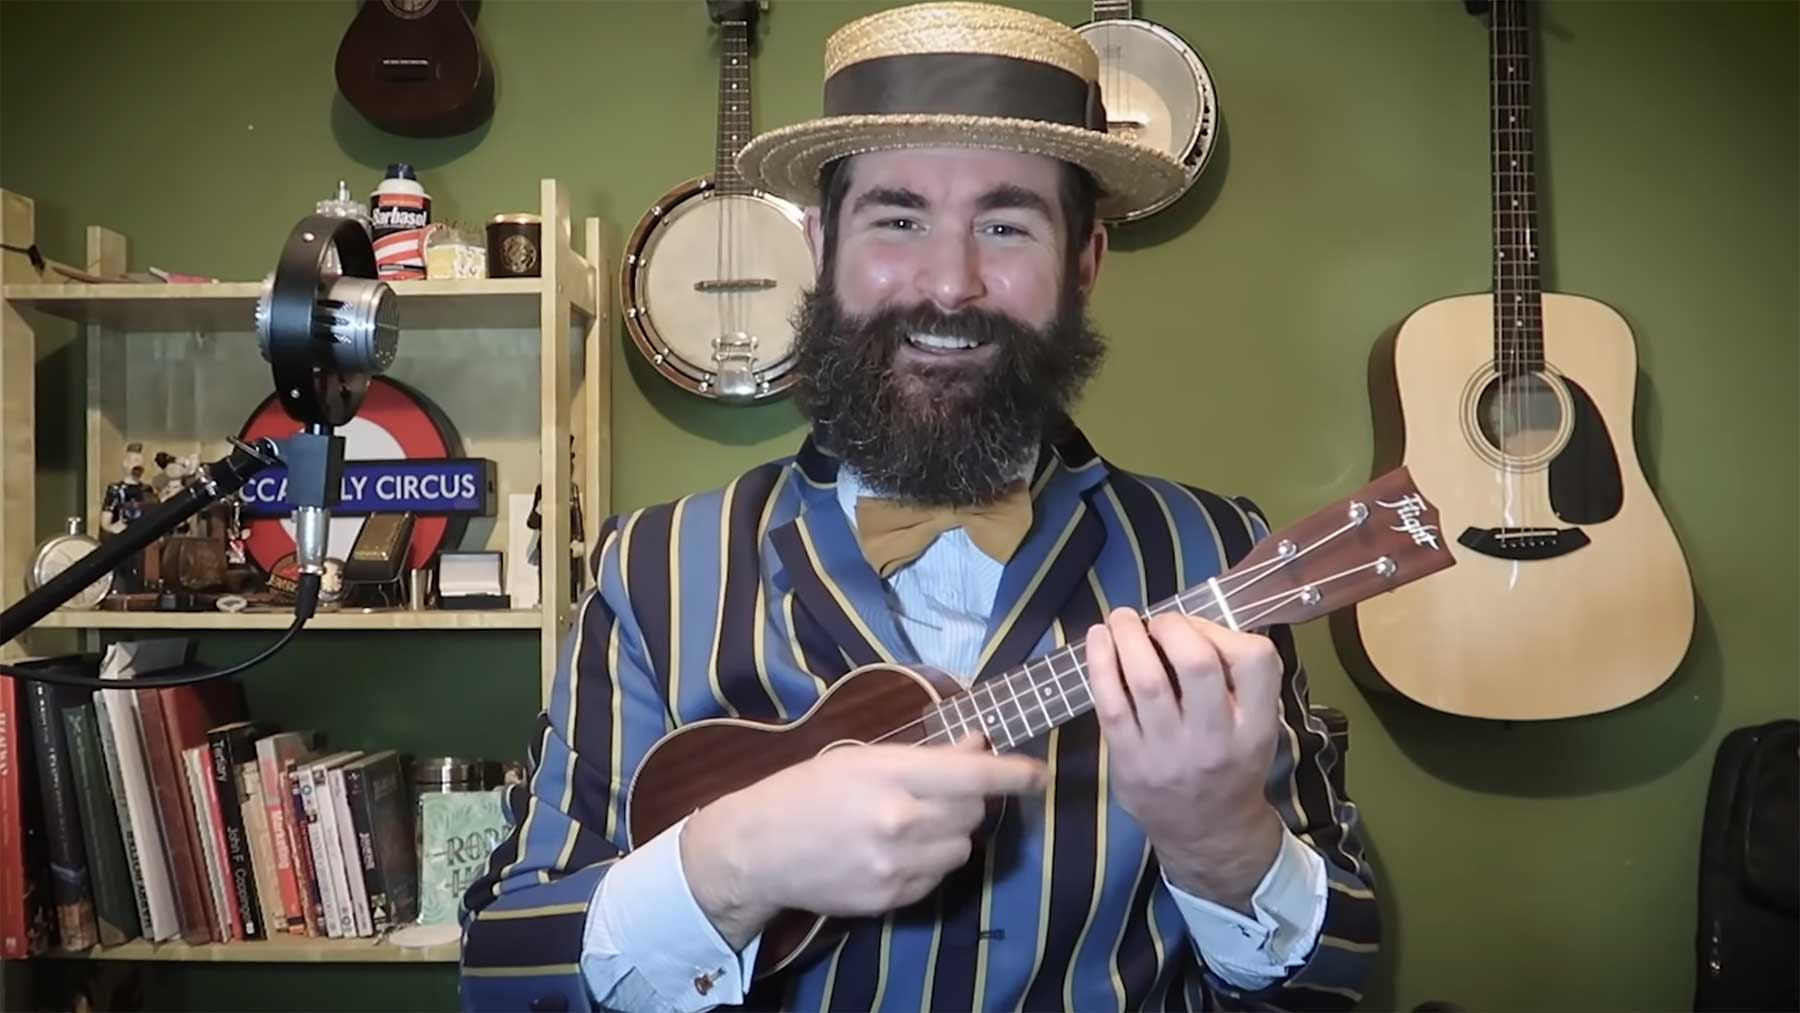 """""""I've No More F***s To Give""""-Lied als unplugged Ukulele-Version"""